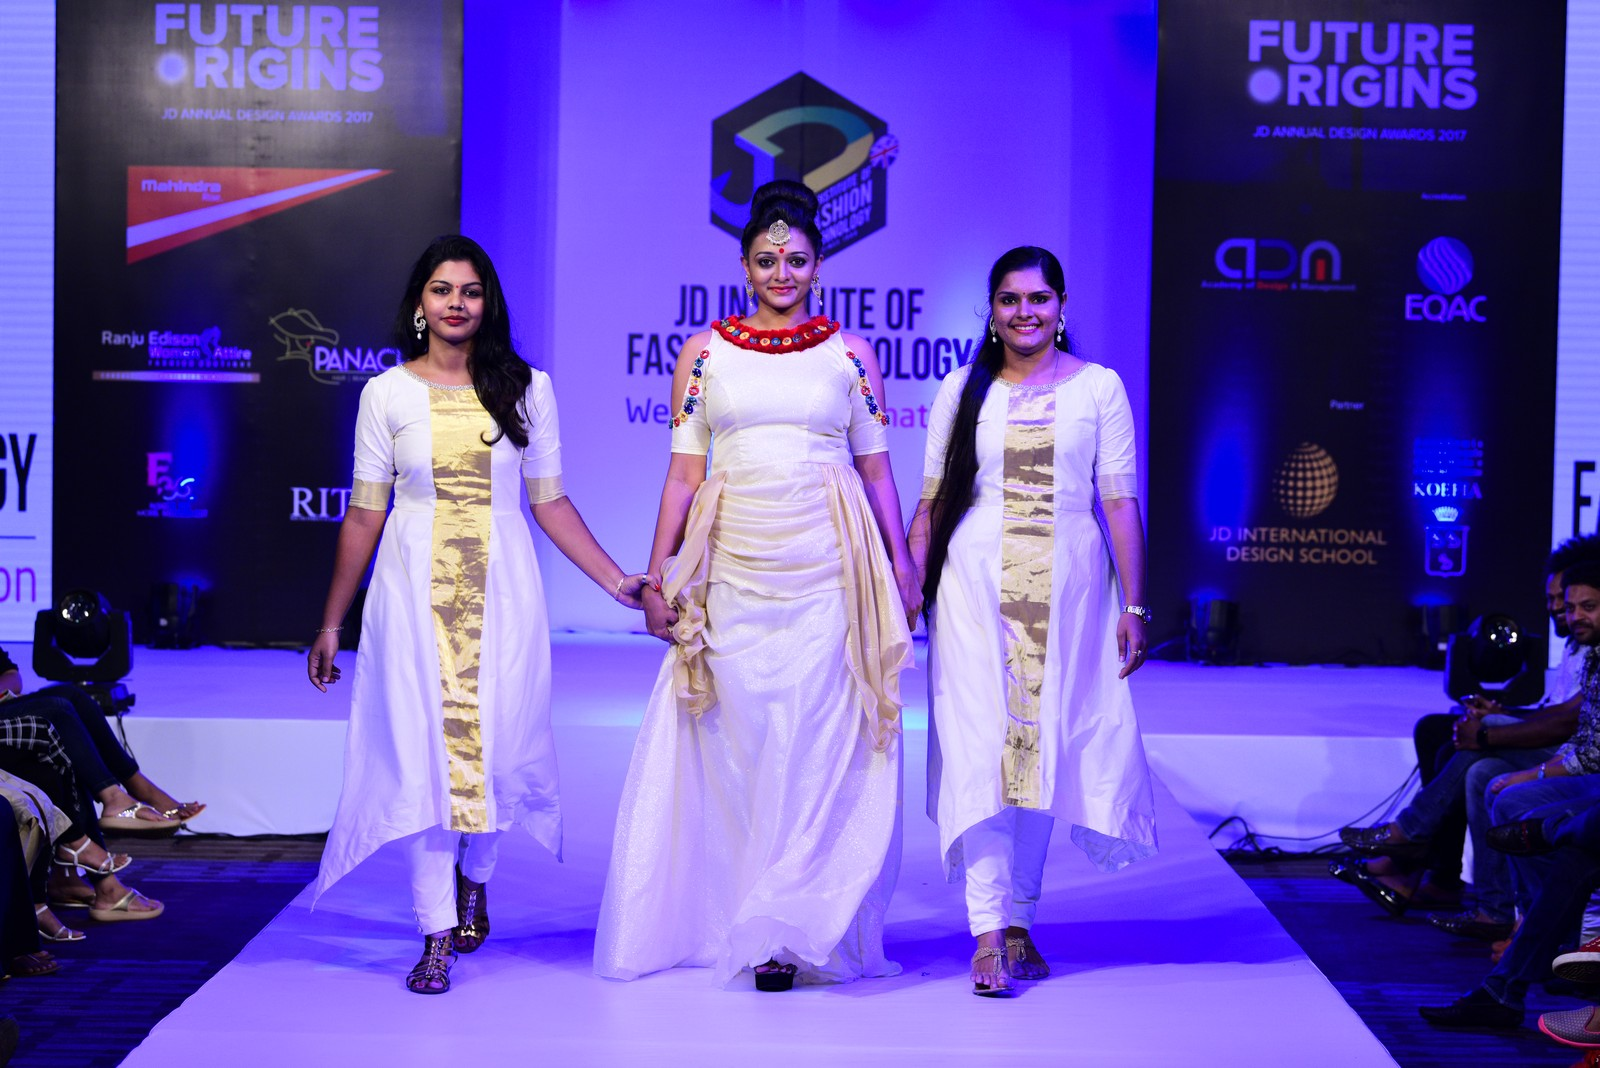 Aartha Parambrya – Future Origin – JD Annual Design Awards 2017 - Cochin aartha parambrya Aartha Parambrya – Future Origin – JD Annual Design Awards 2017 Aartha Parambrya     Future Origin     JD Annual Design Awards 2017 Cochin 12